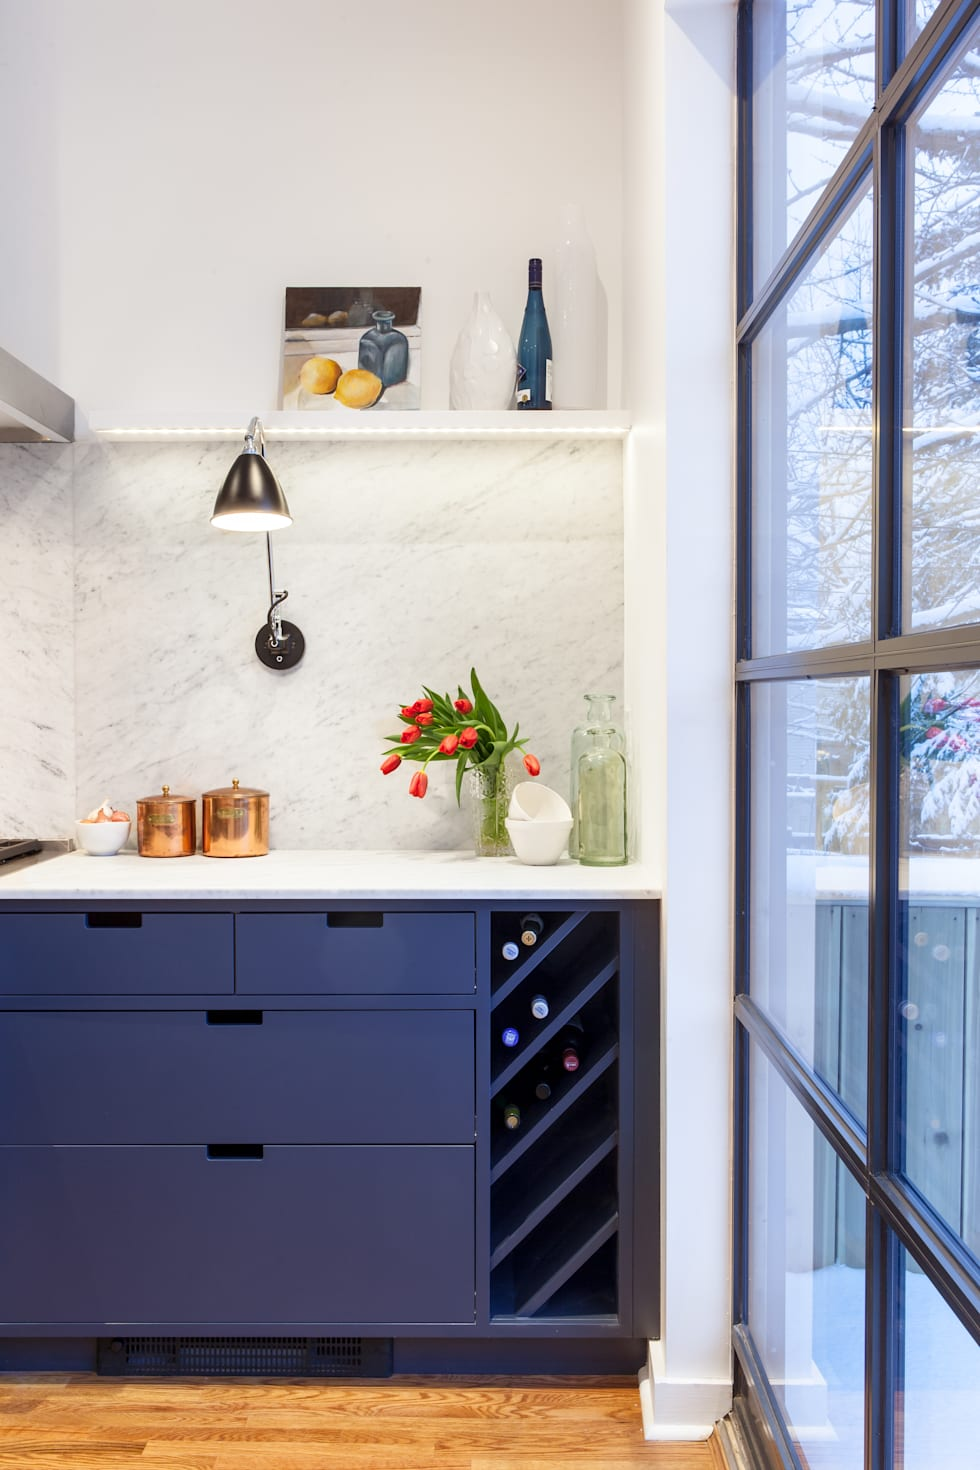 Amazing kitchen storage ideas for a truly organized space